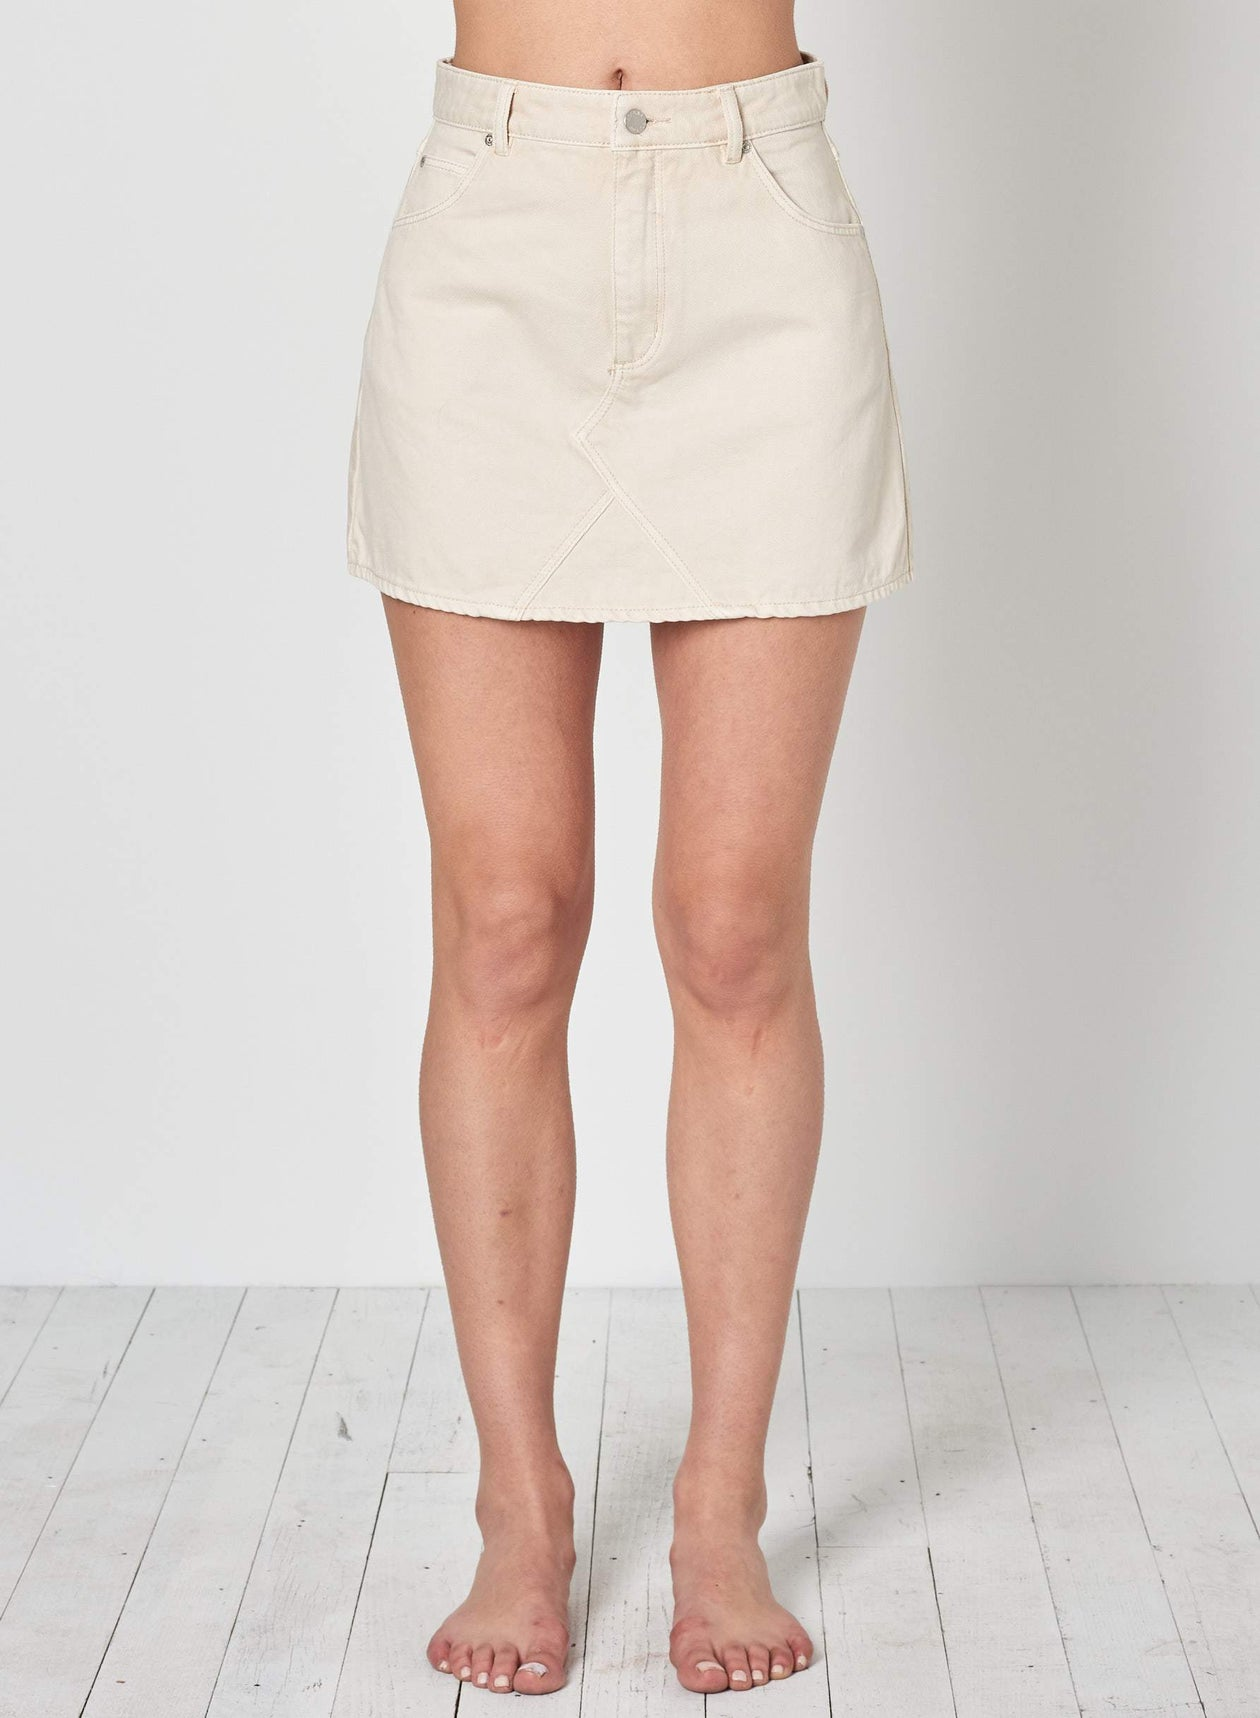 Claudia Skirt in Cream by Rolla's